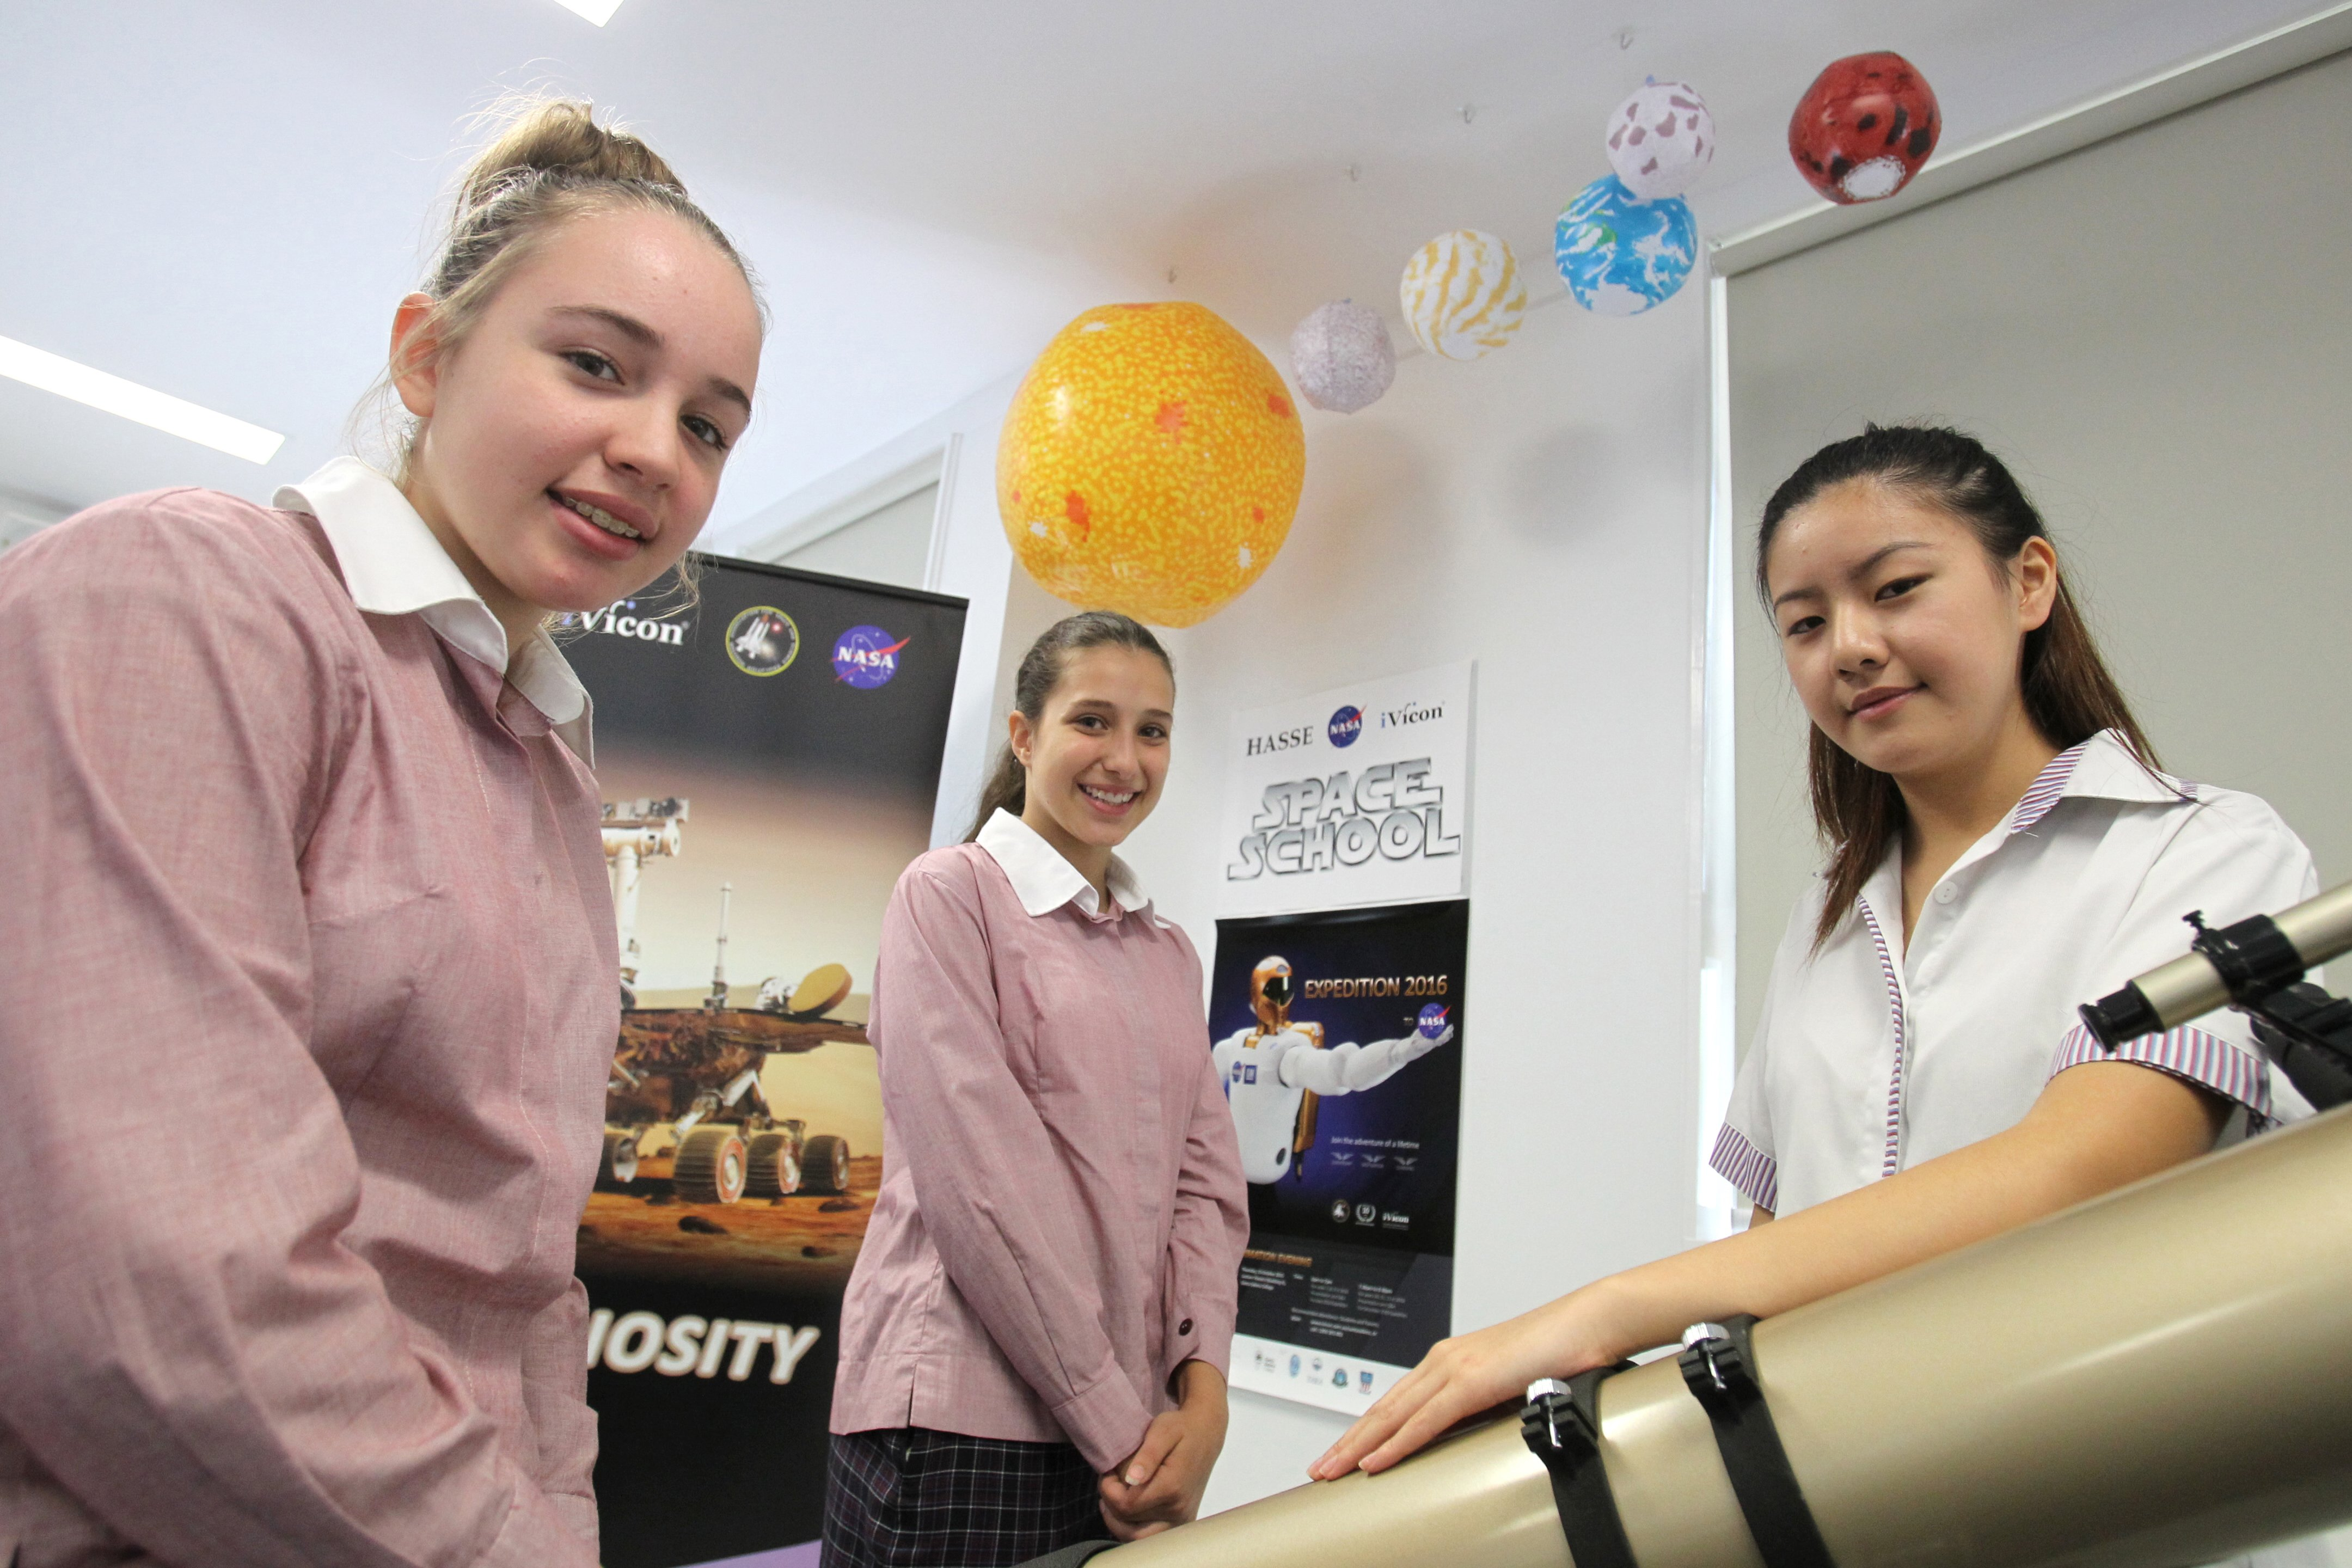 Domremy College Five Dock students Velia Fierro and Simona Noulas will experience the moon's gravitational pull and other simulations used to train astronauts for space missions.